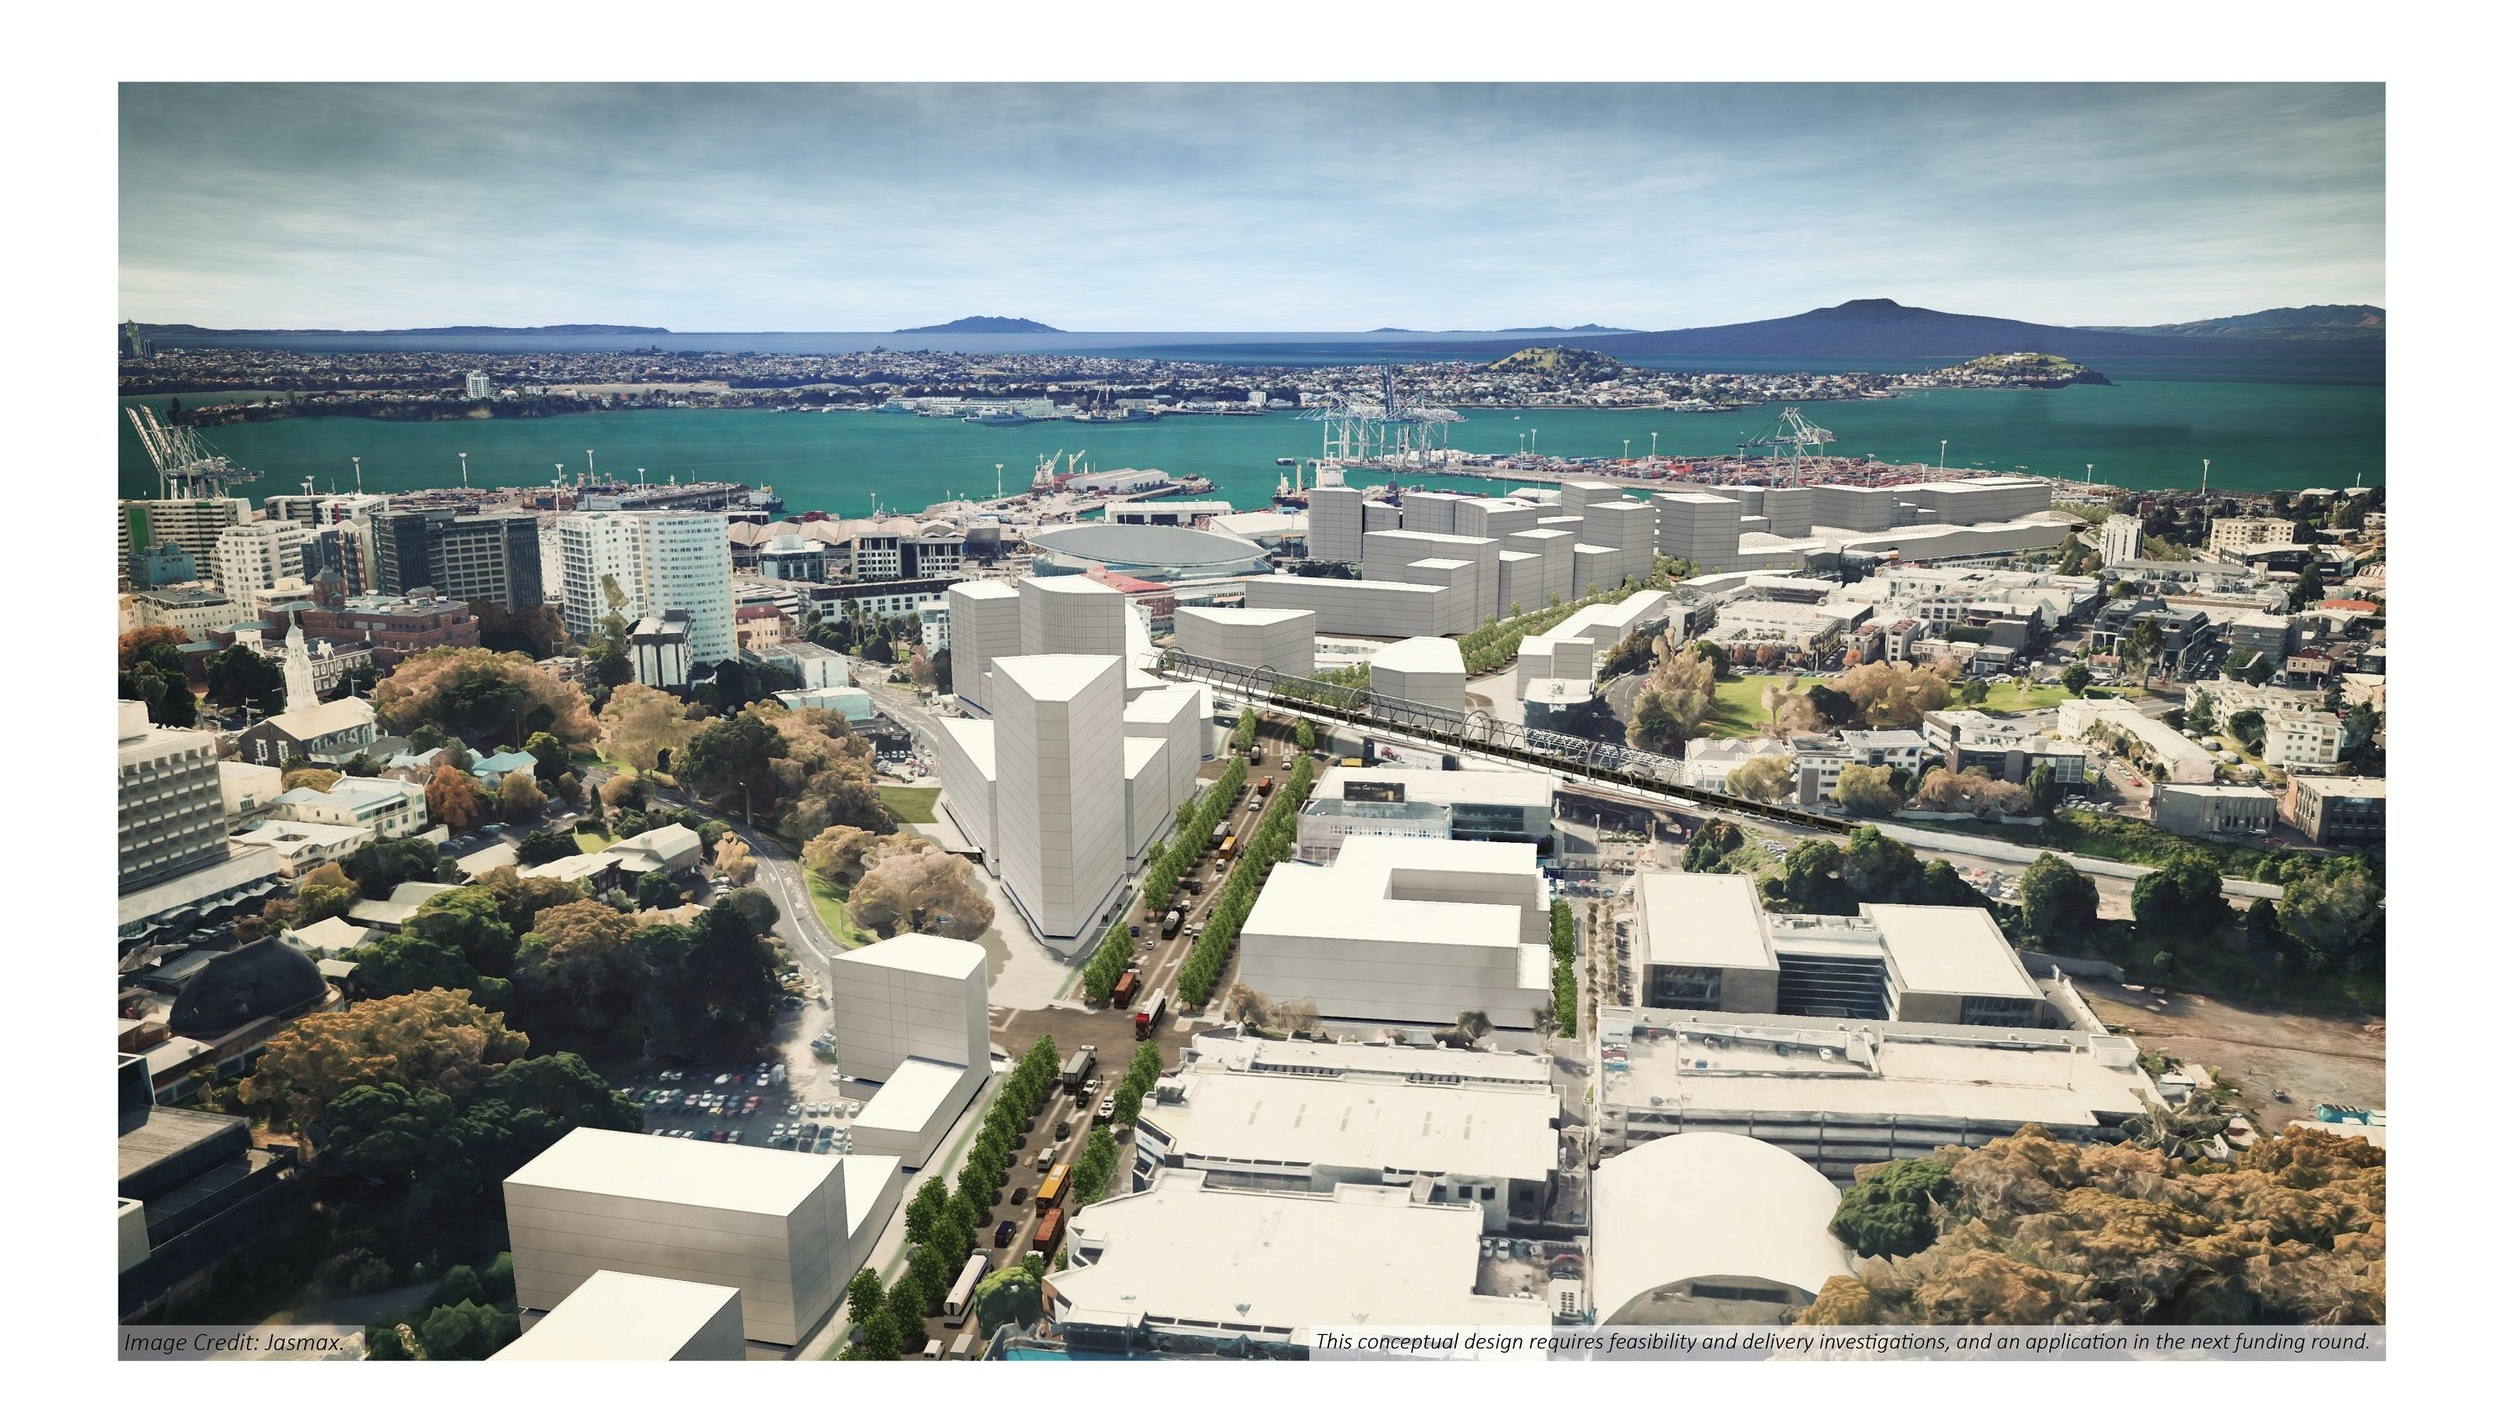 Concept design - aerial view of regenerated lower Grafton Boulevard. Image credit: Jasmax